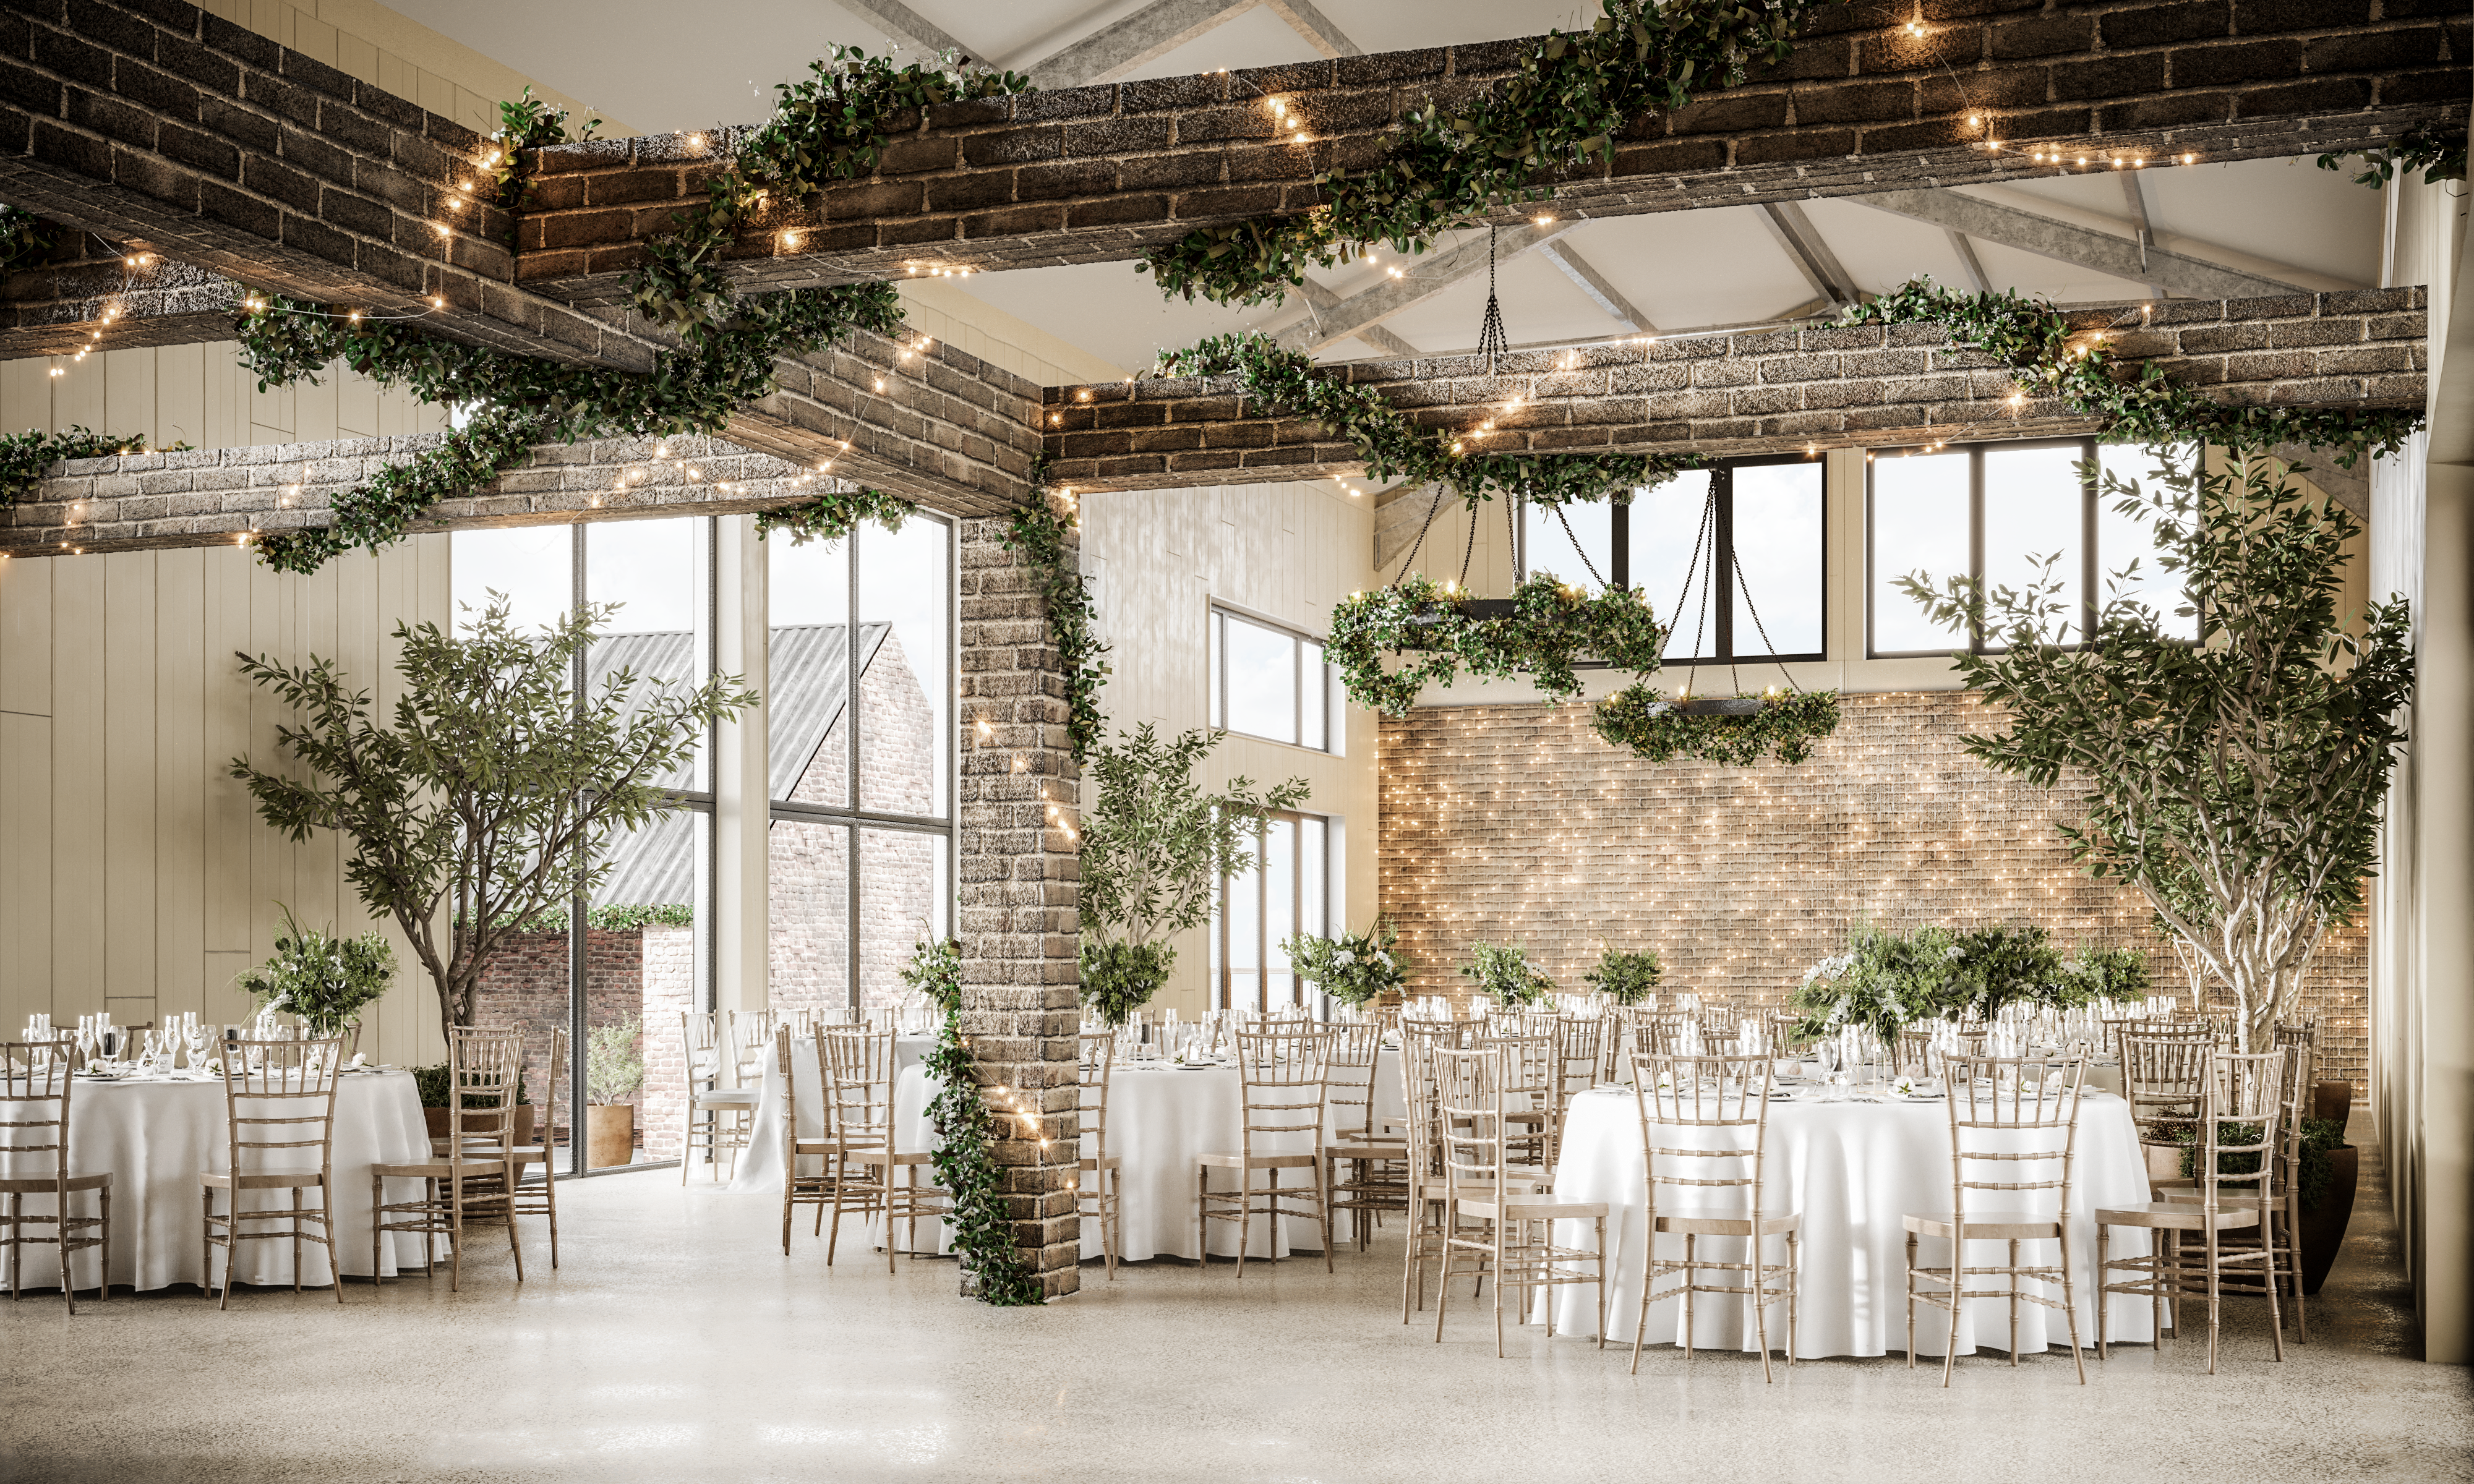 Interior image of new events barn at East Afton Farmhouse